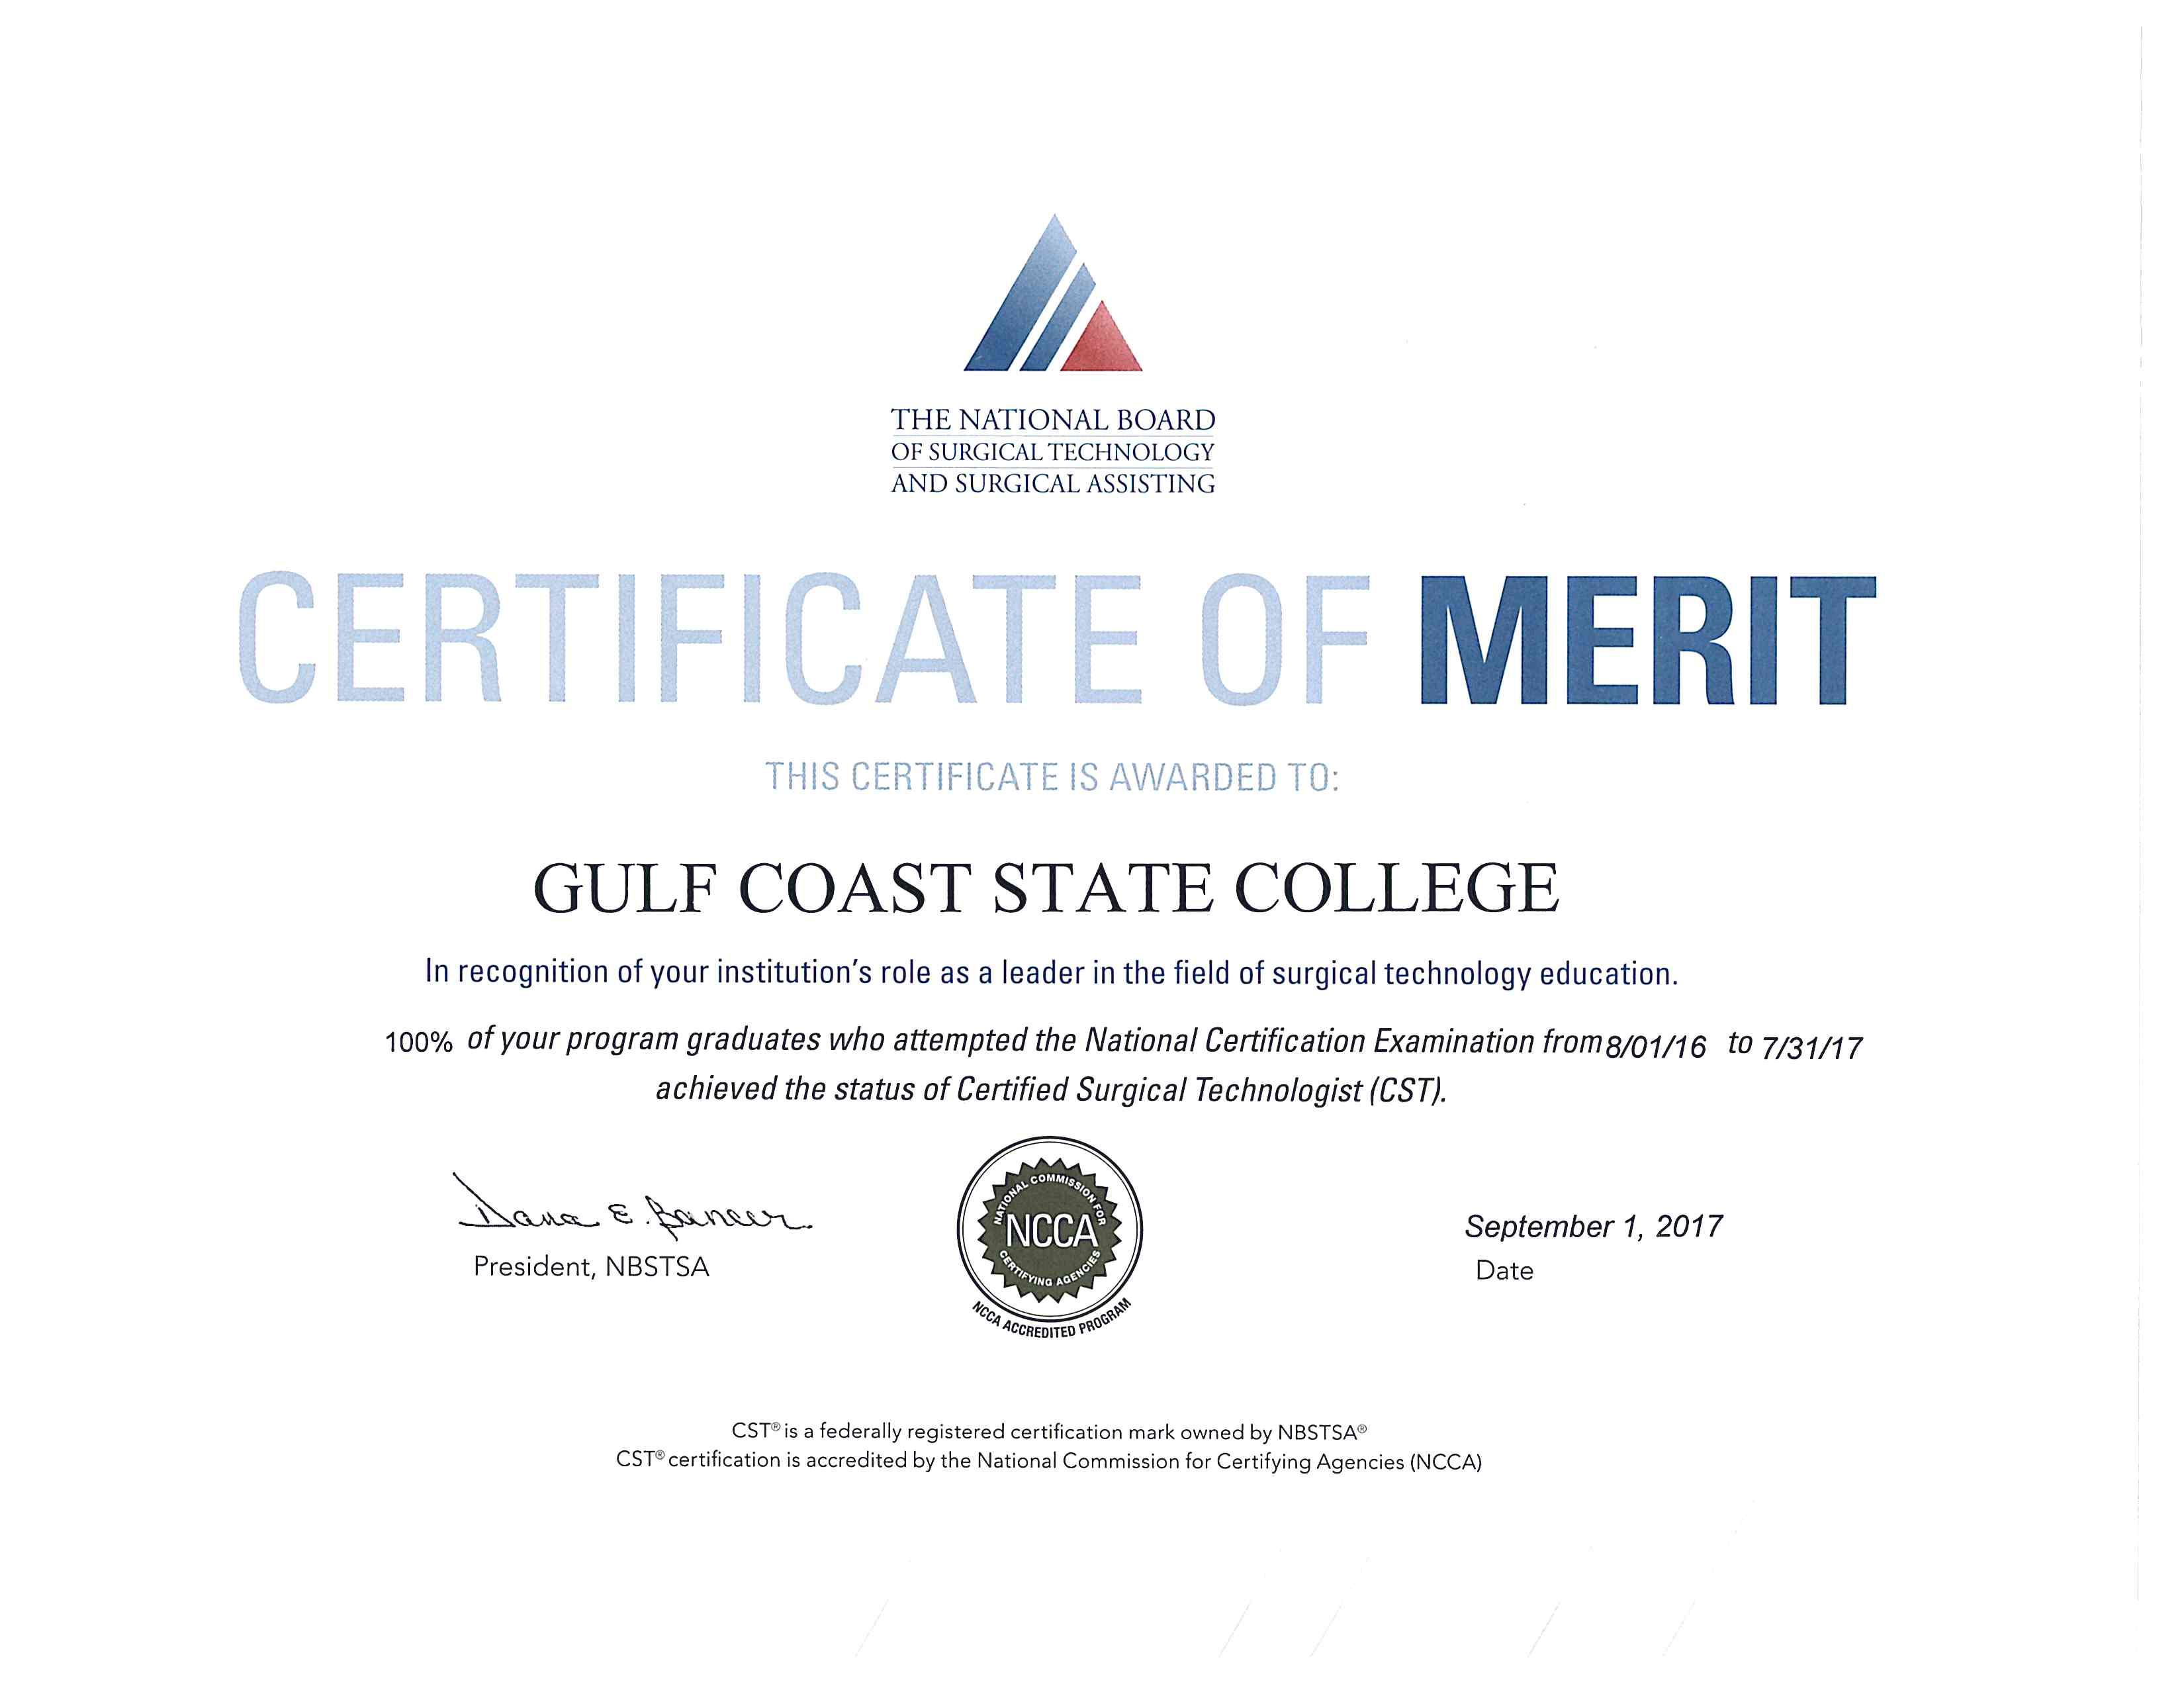 surg-tech certificate